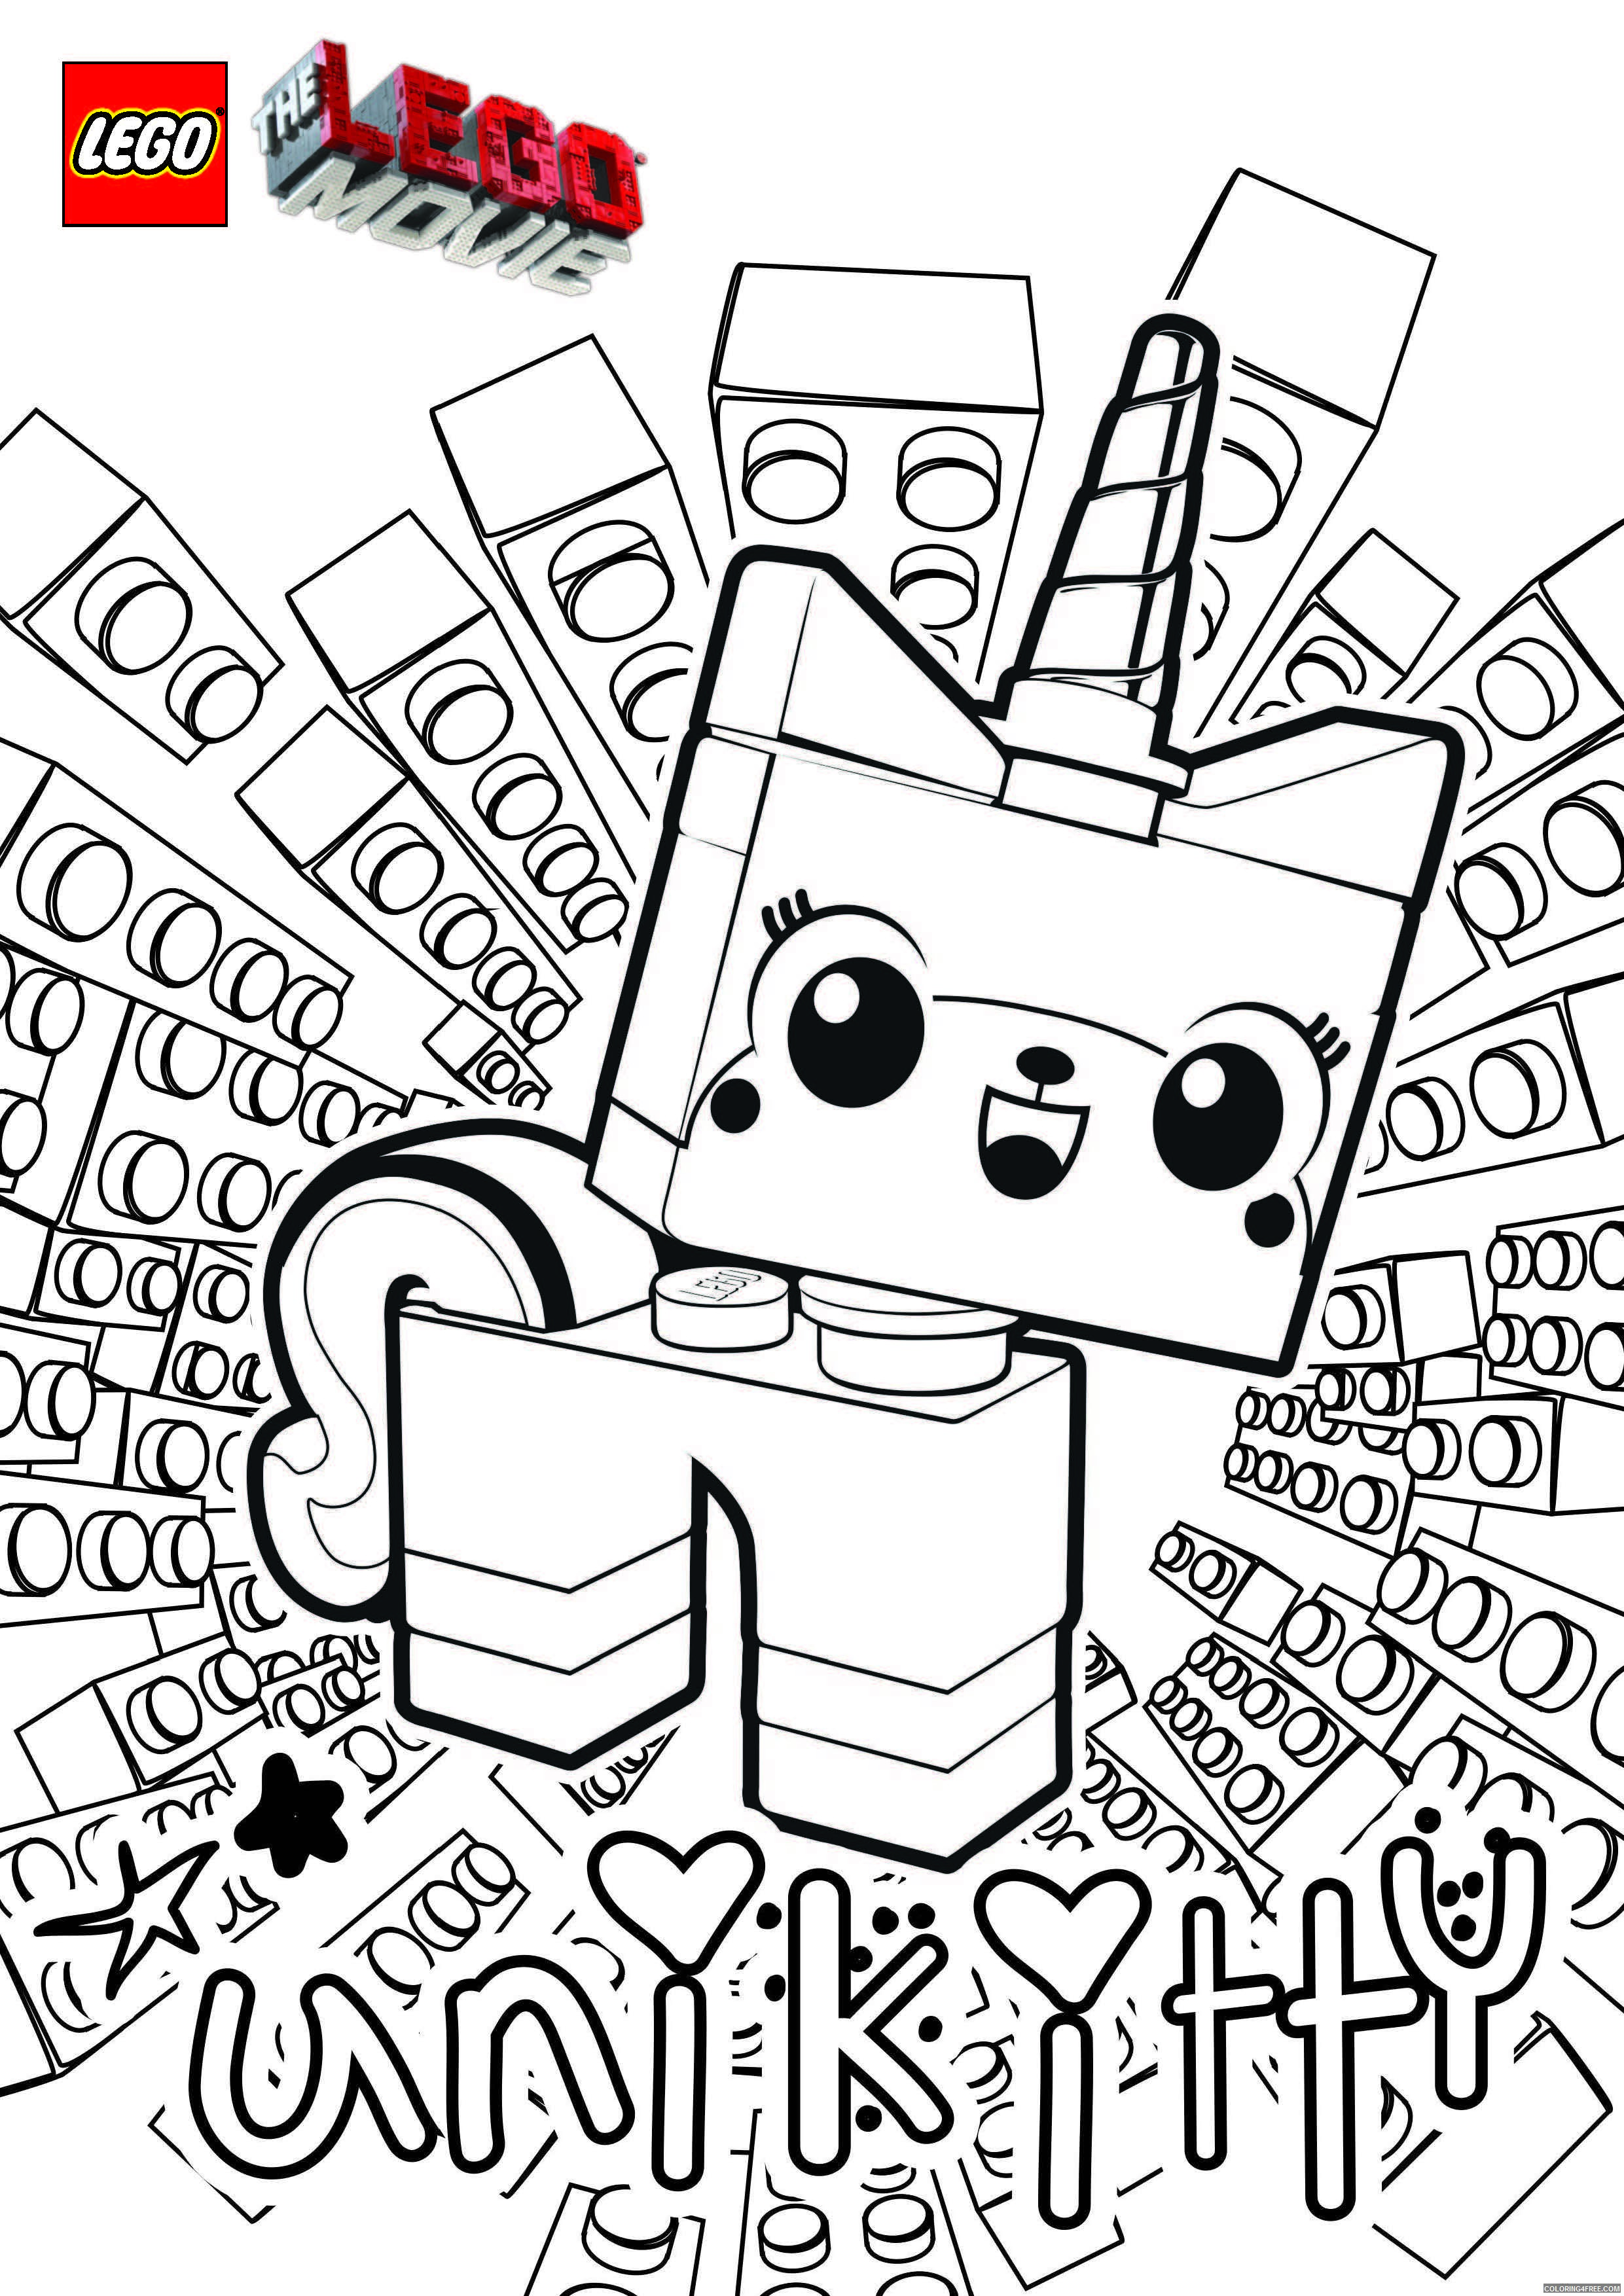 LEGO Unikitty Coloring Pages Cartoons UniKitty Lego Movie Printable 2020 3784 Coloring4free